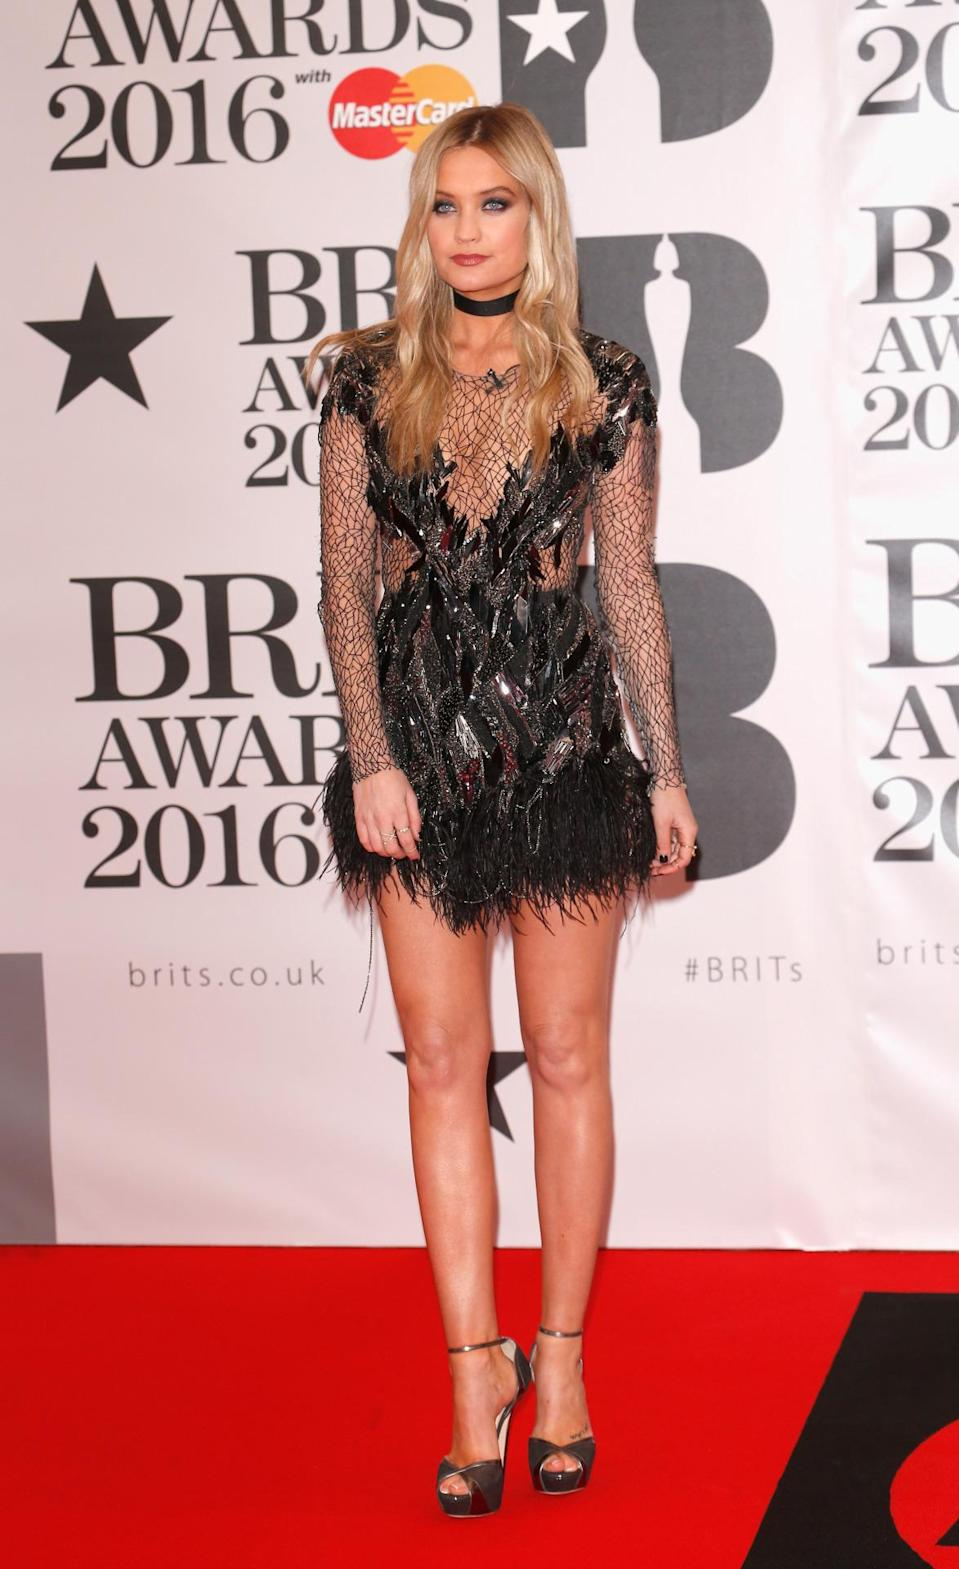 <p>Always the first to arrive (she turned up first at the BAFTA Awards last month), Laura Whitmore chose to show off her long legs in a feathered mini dress. <i>[Photo: Getty]</i></p>